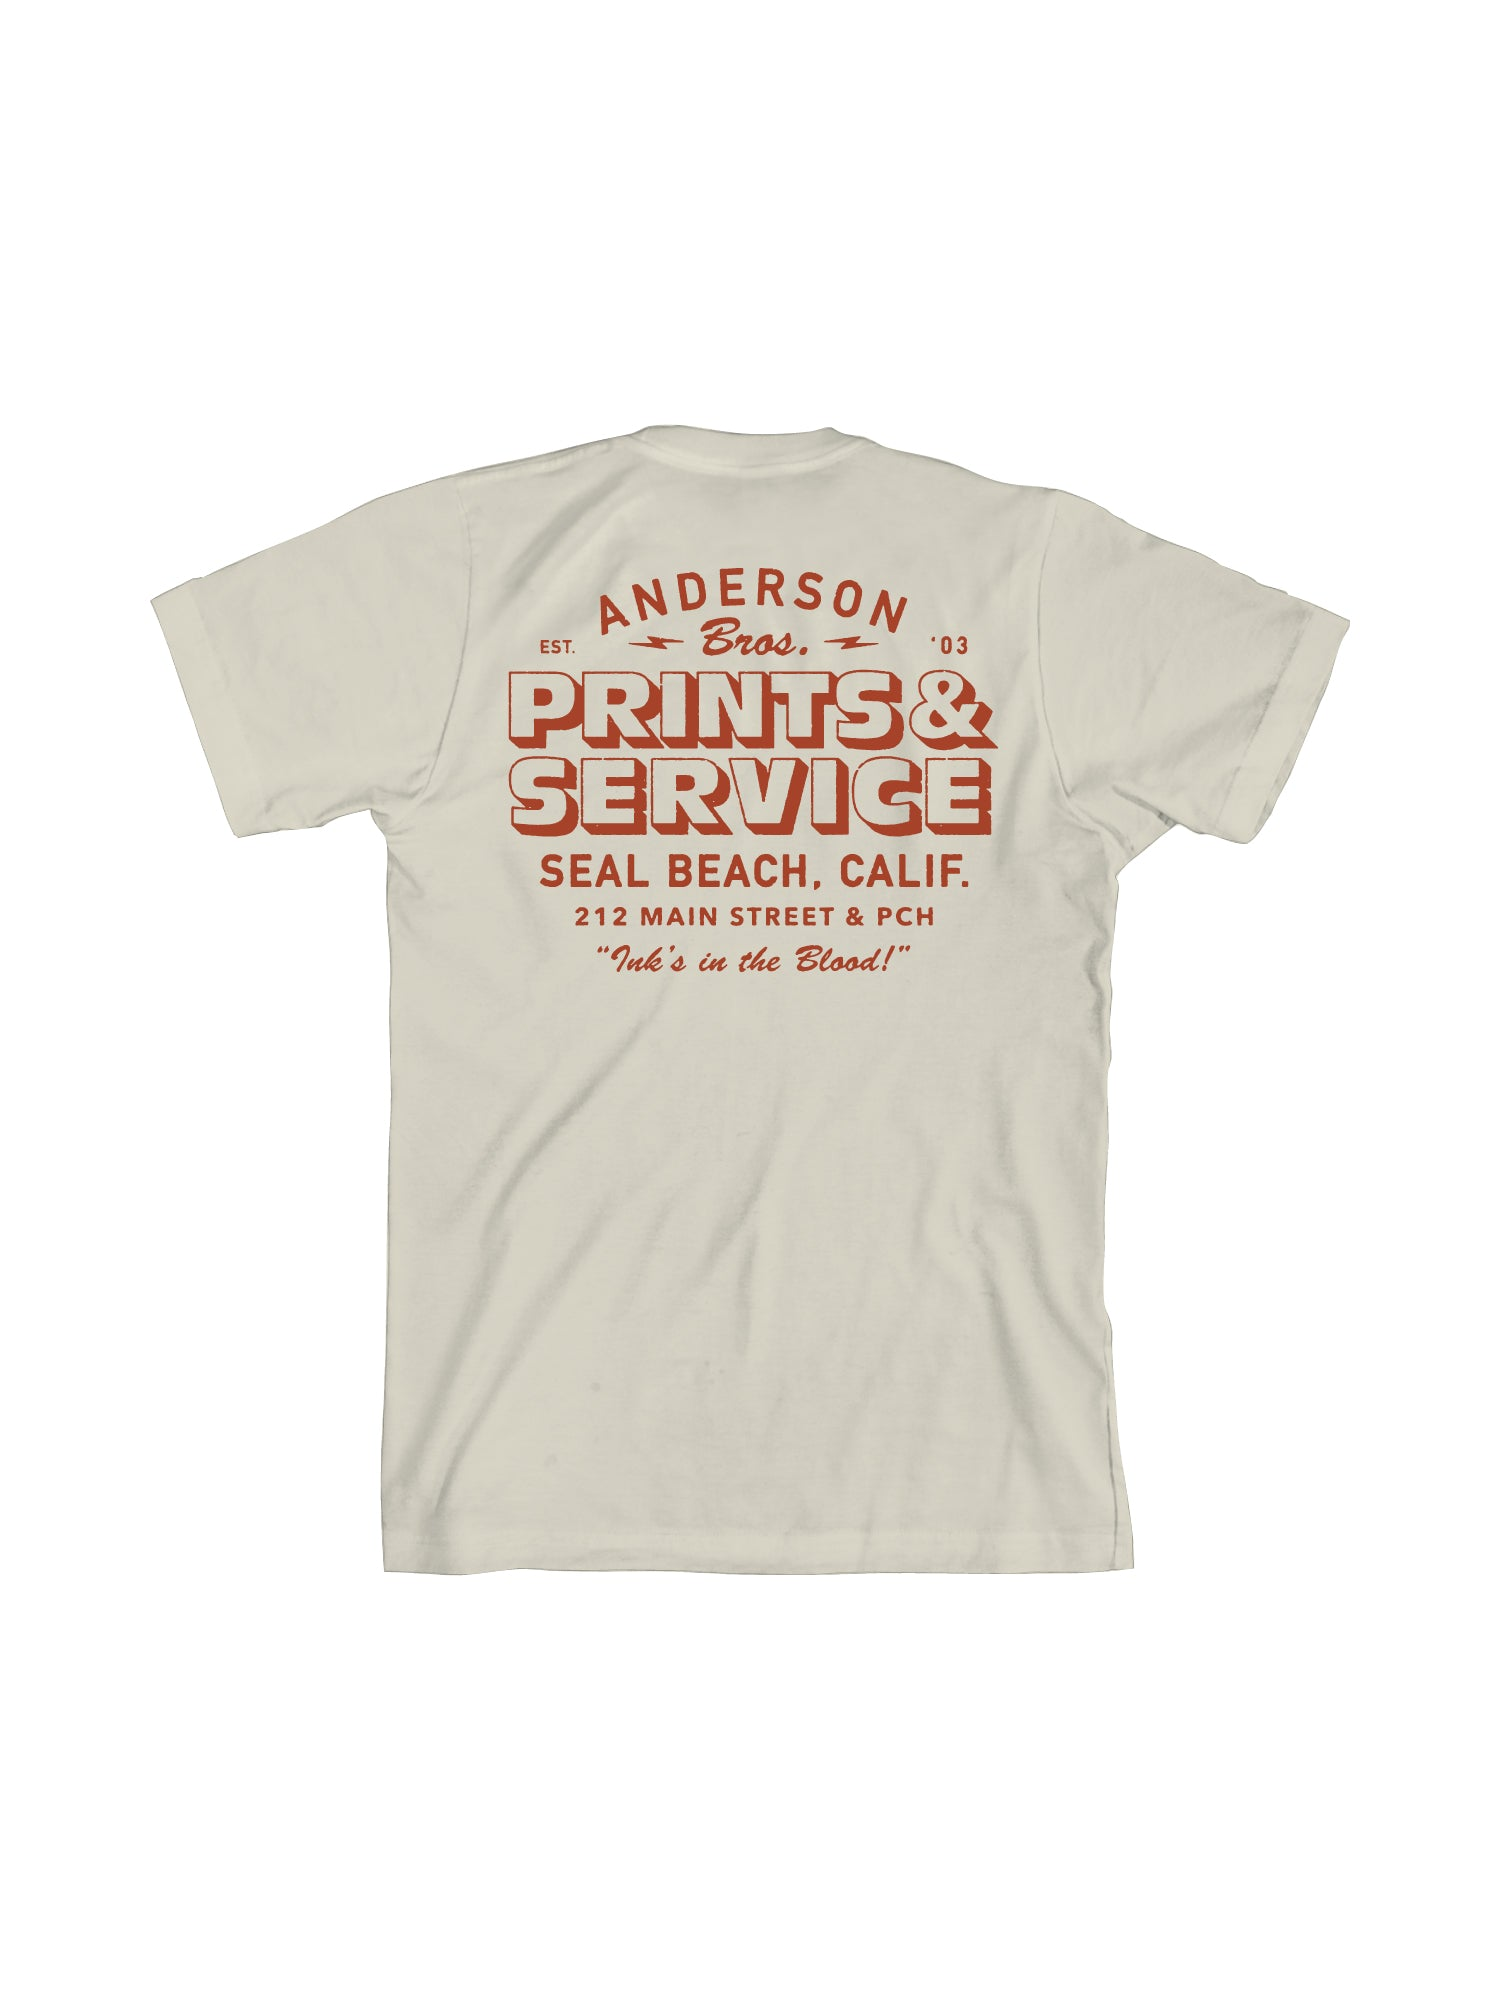 ANDERSON PRINTS & SERVICES - VINTAGE WHITE